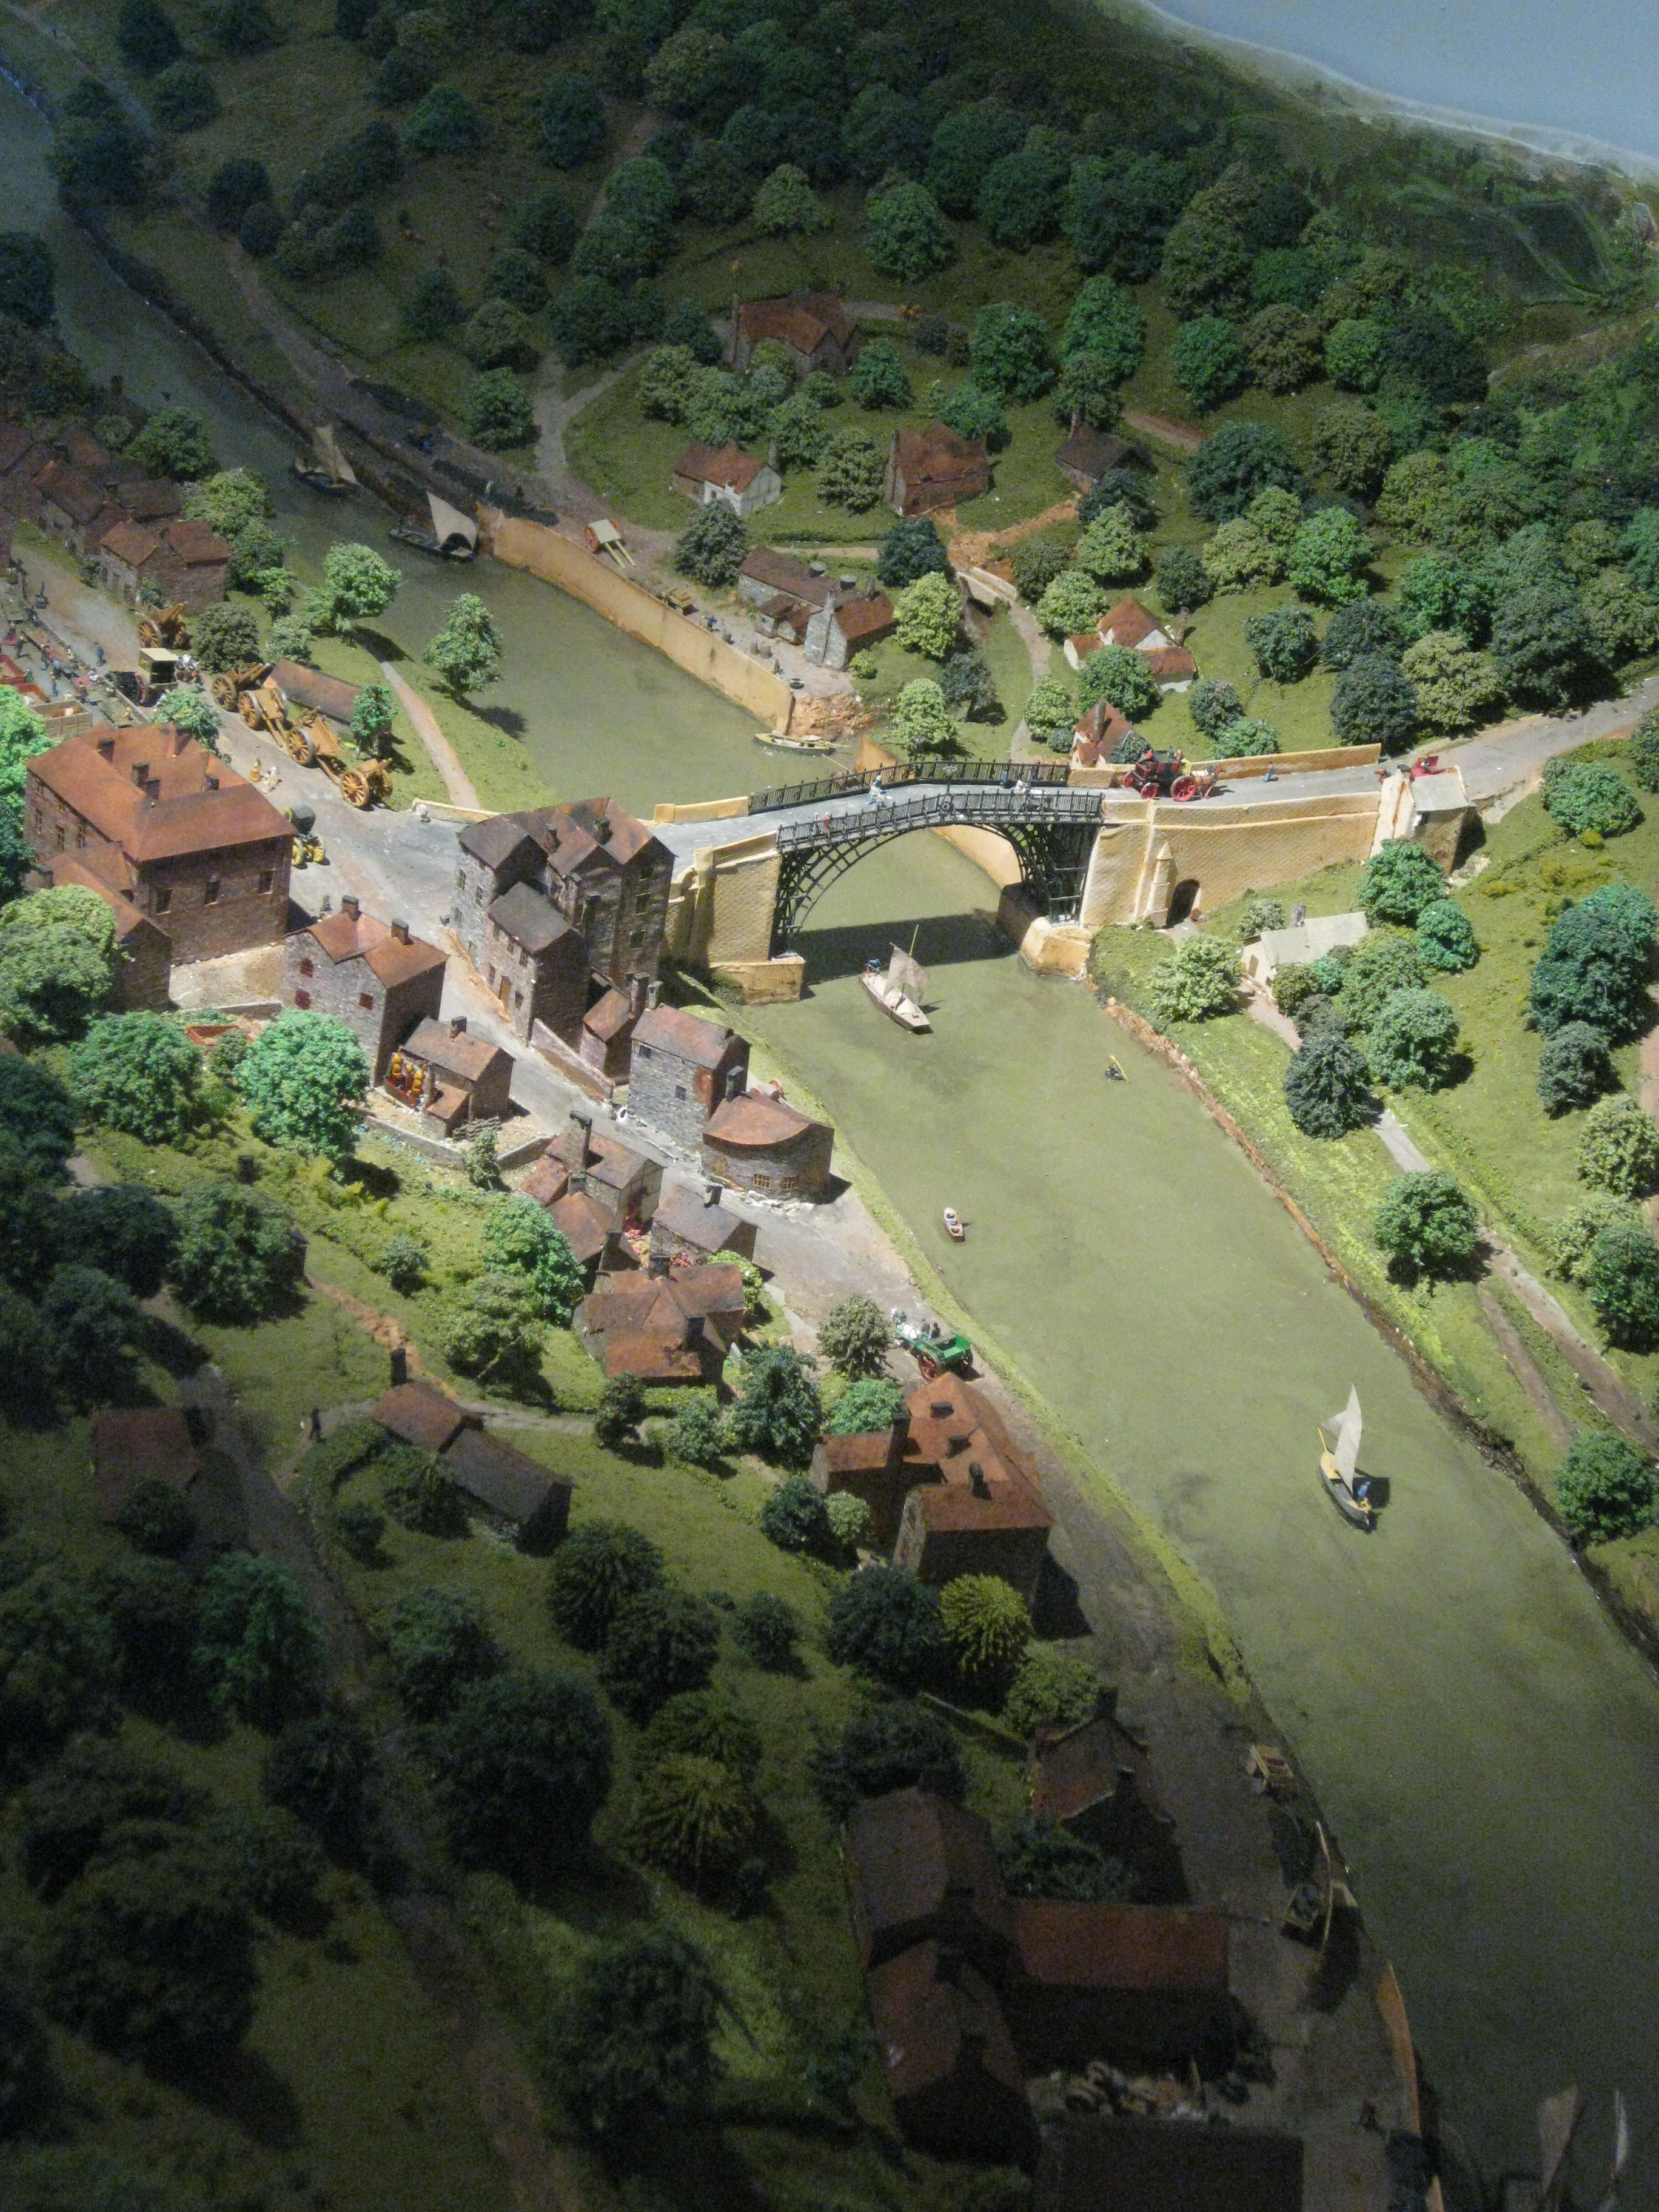 Incredible model of the Ironbridge Gorge in the Museum of The Gorge.